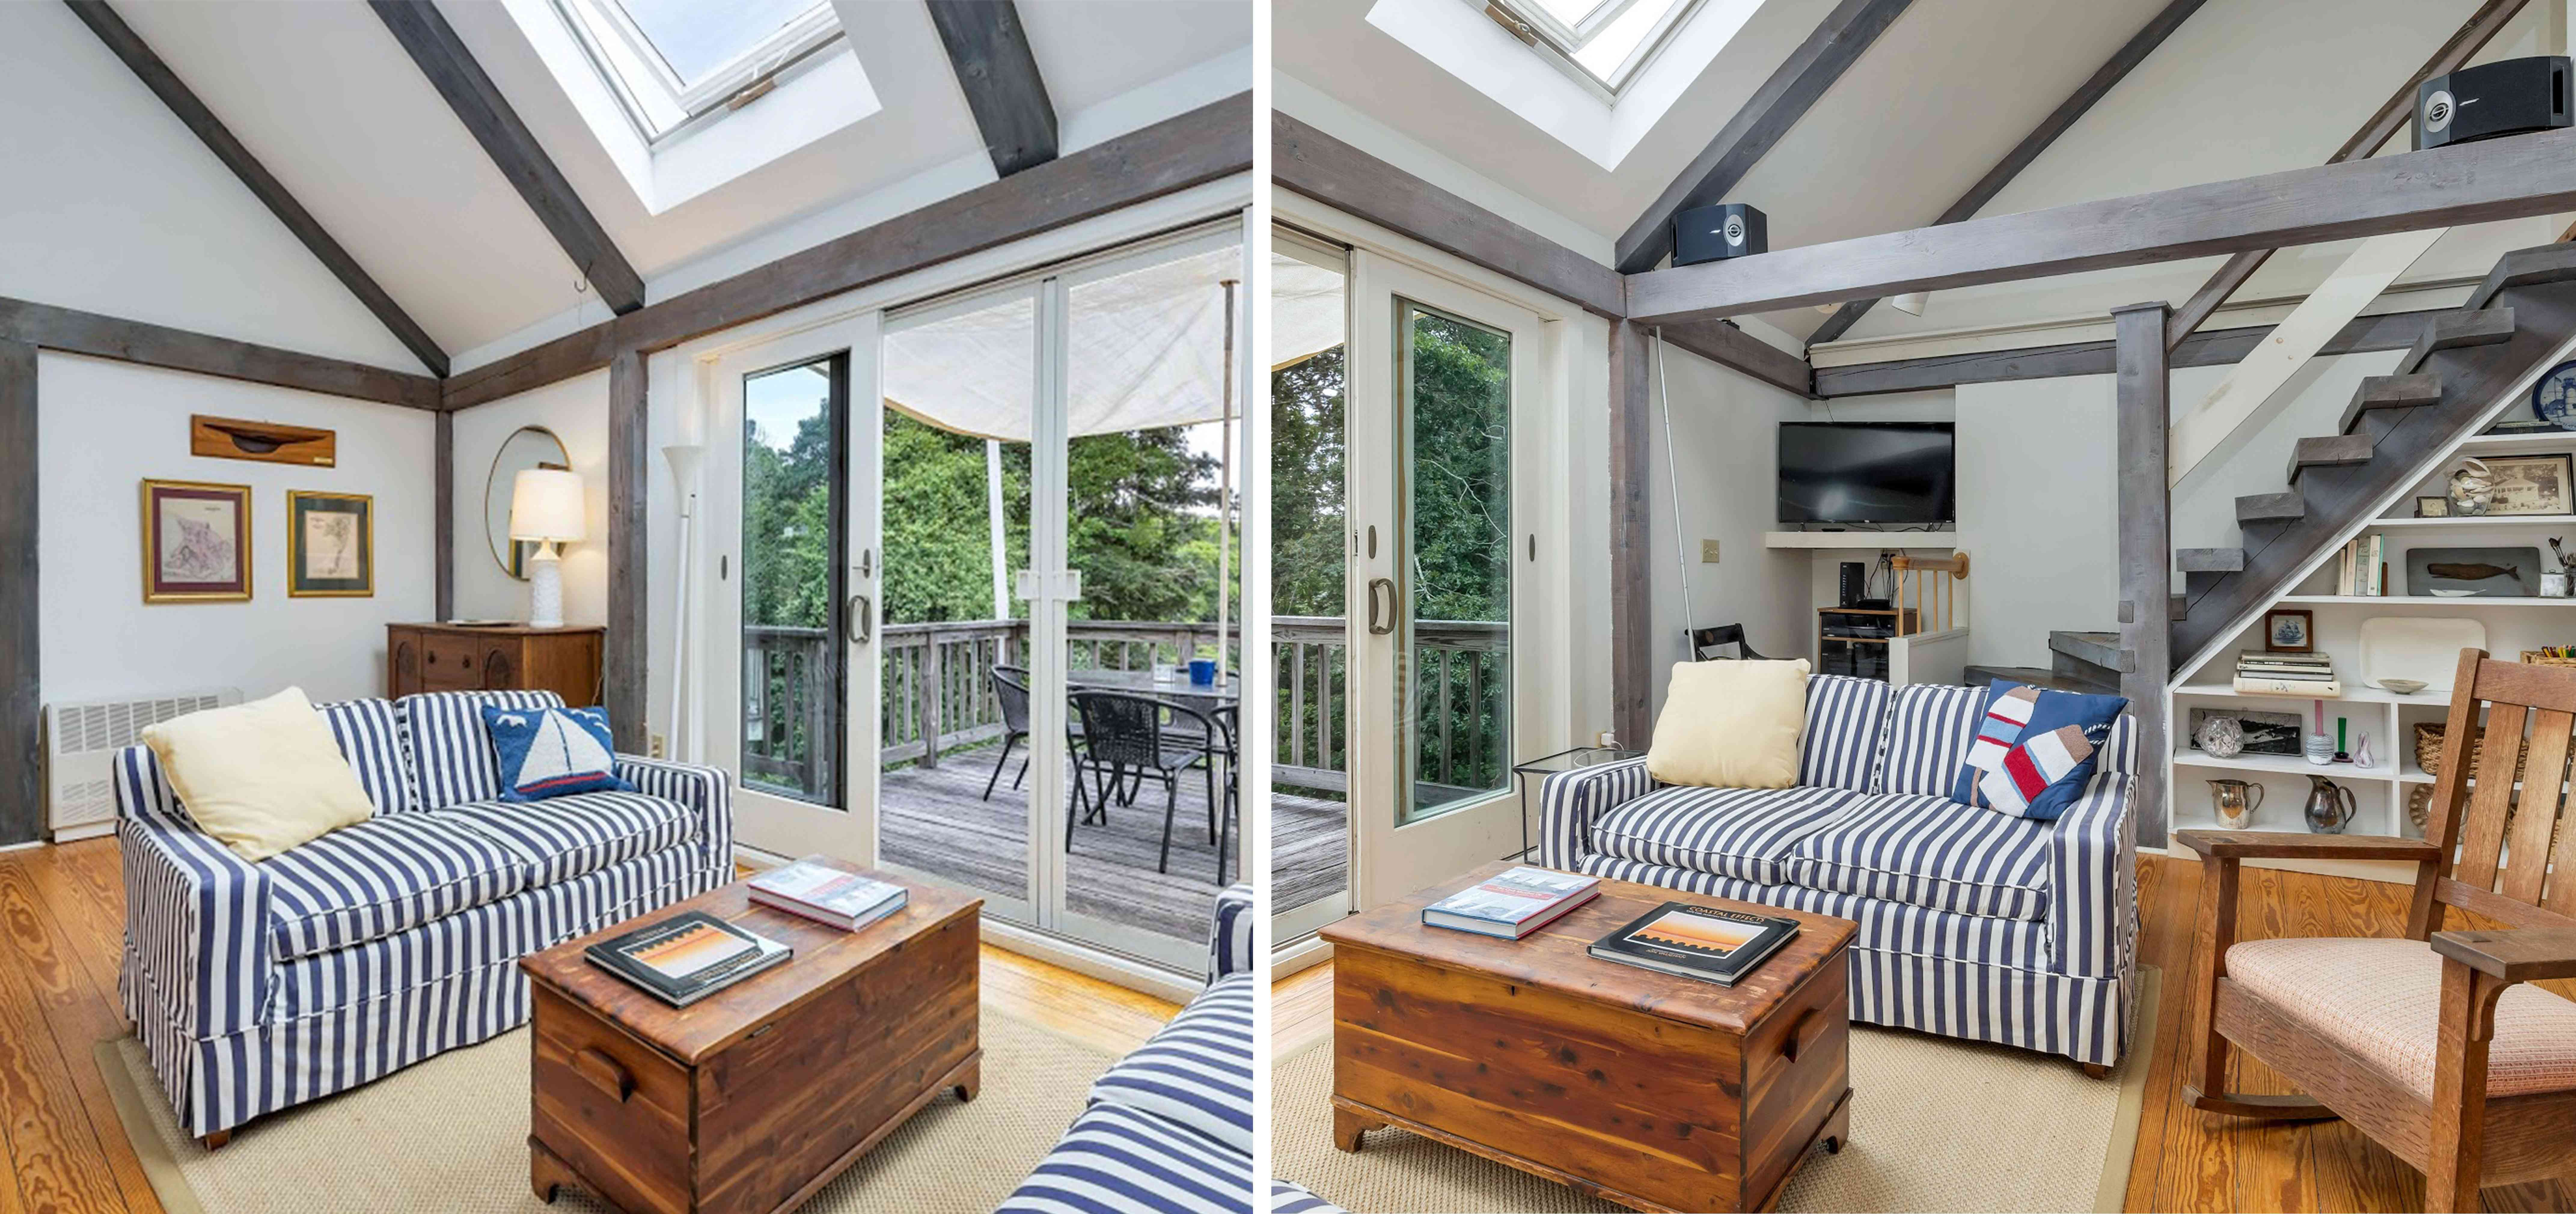 The den of the Cape Cod house from two different perspectives of the room